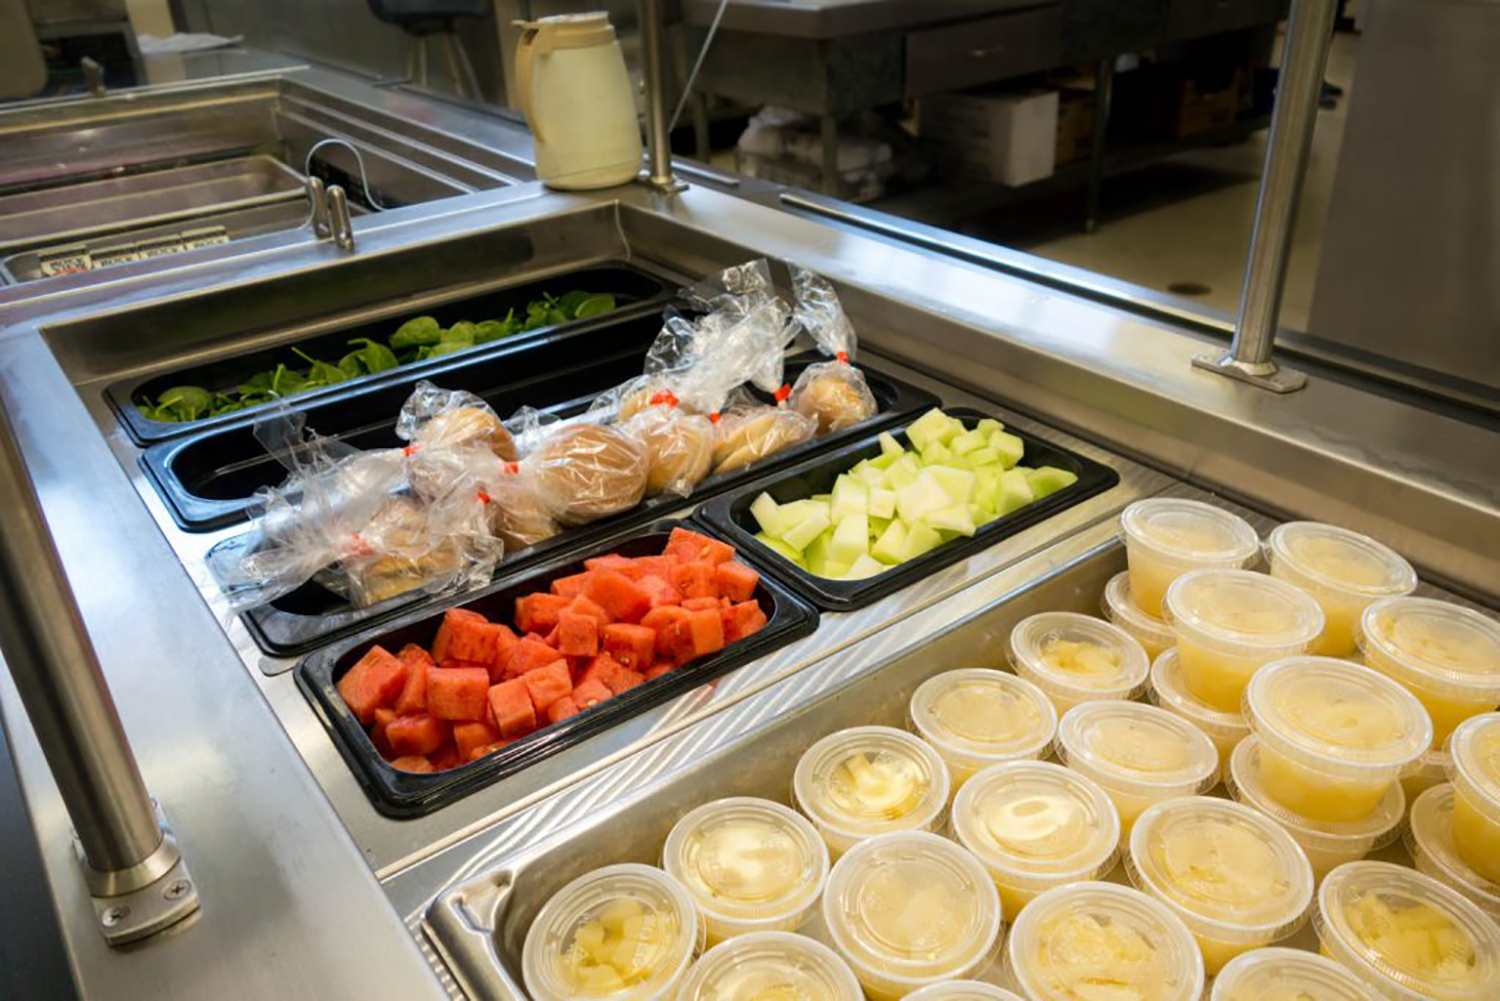 Ice Pan Salad Bar Site Picture - G.A. Systems, Huntington Beach